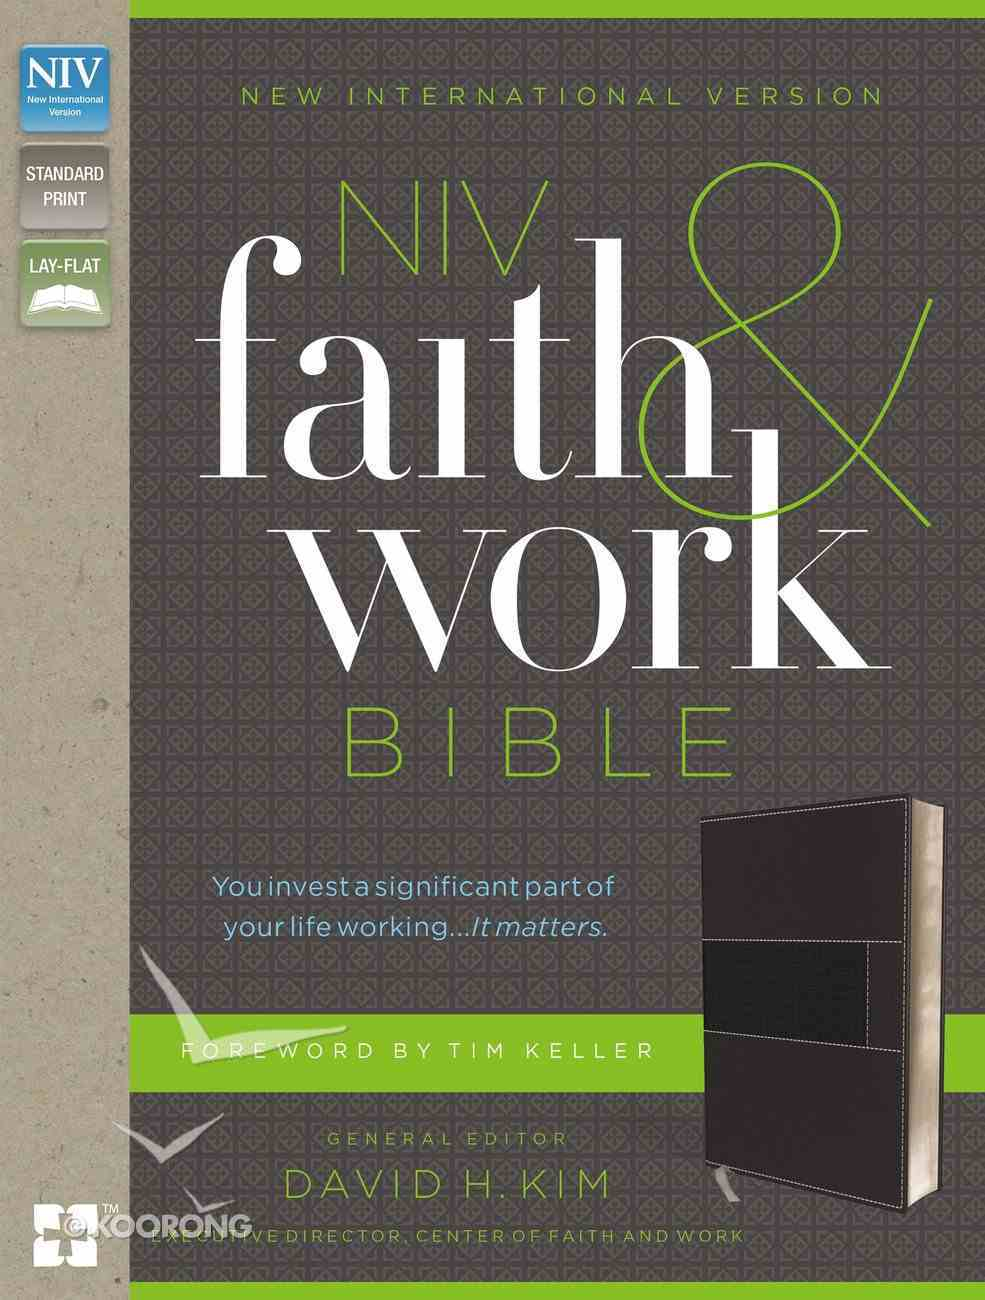 NIV Faith and Work Bible Gray (Black Letter Edition) Premium Imitation Leather